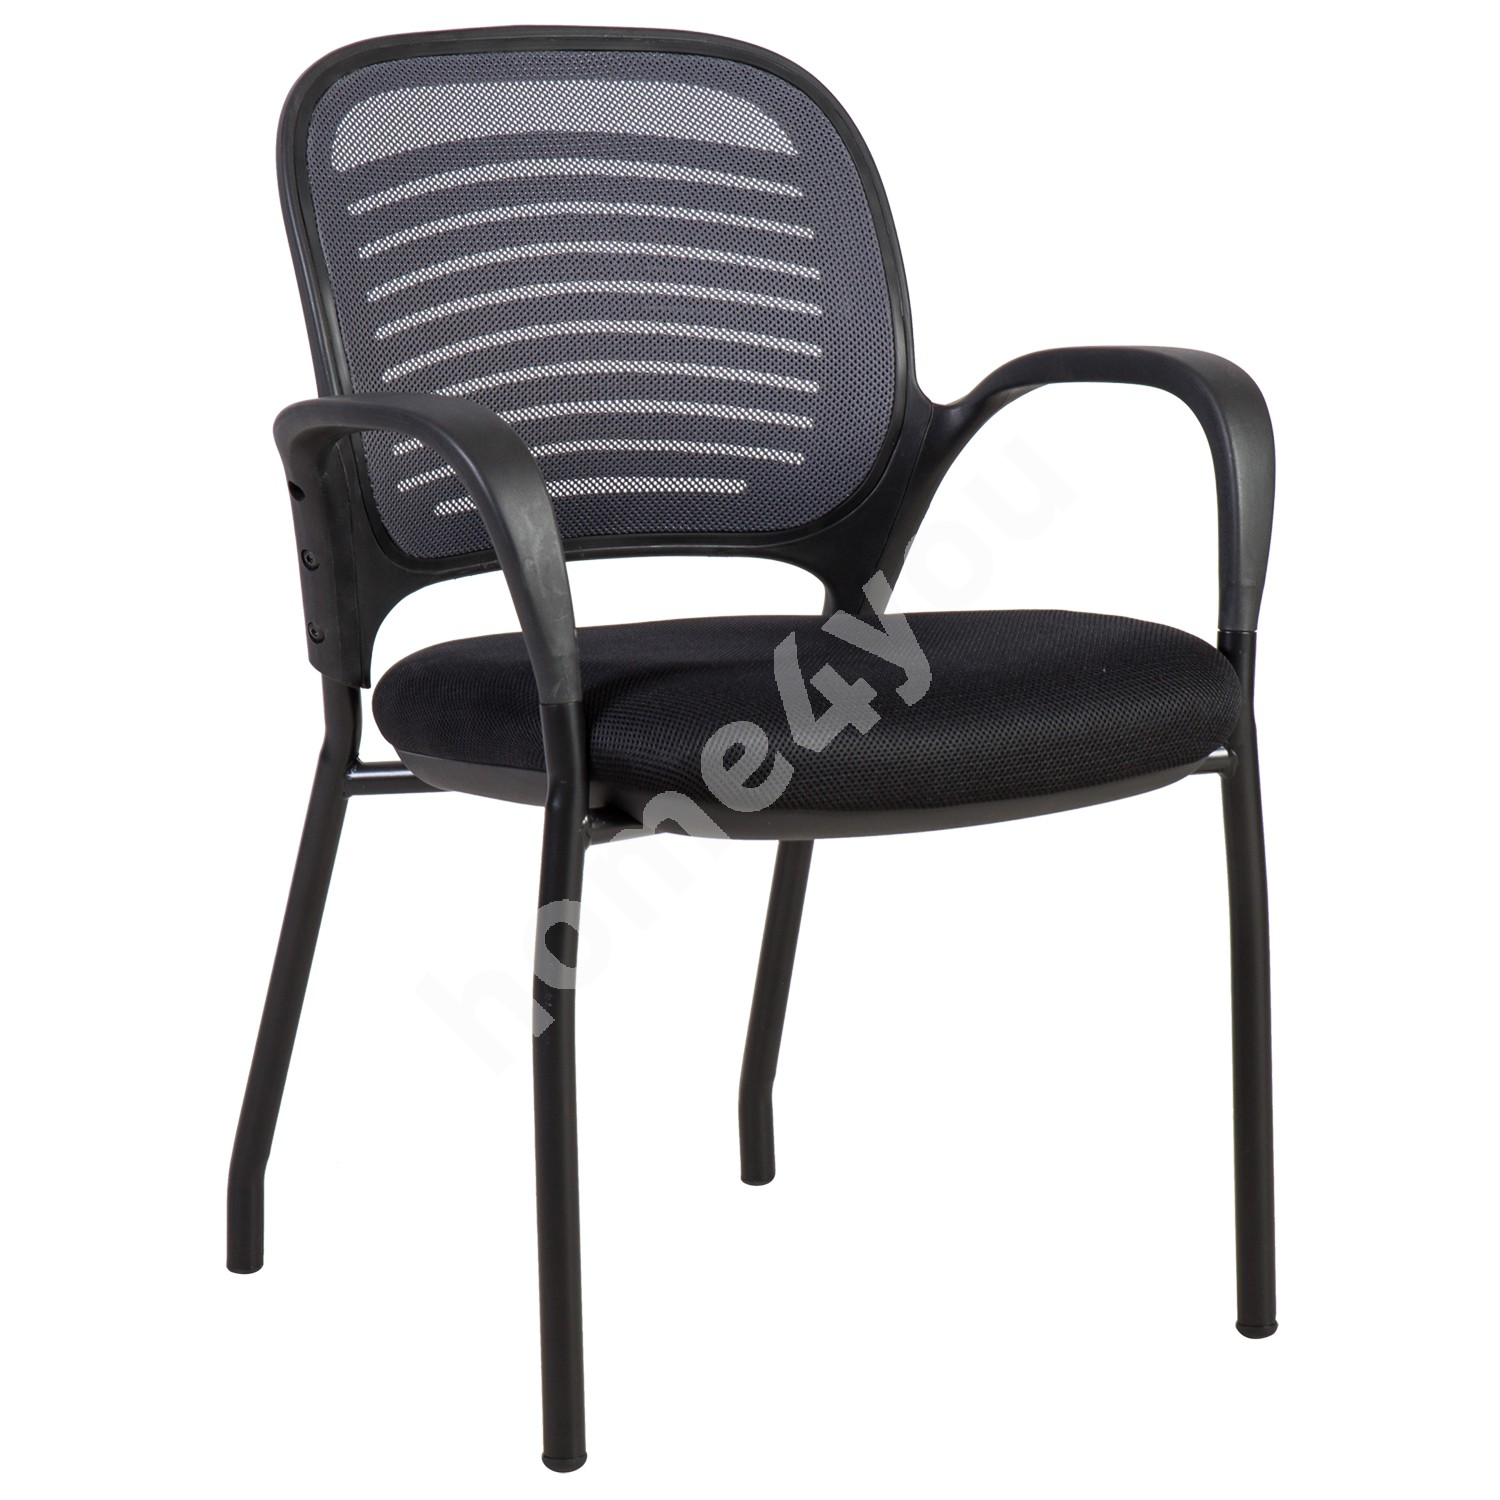 Guest chair TORINO 59xD59xH84cm, seat: fabric, color: black, back rest: mesh, color: grey, frame: black